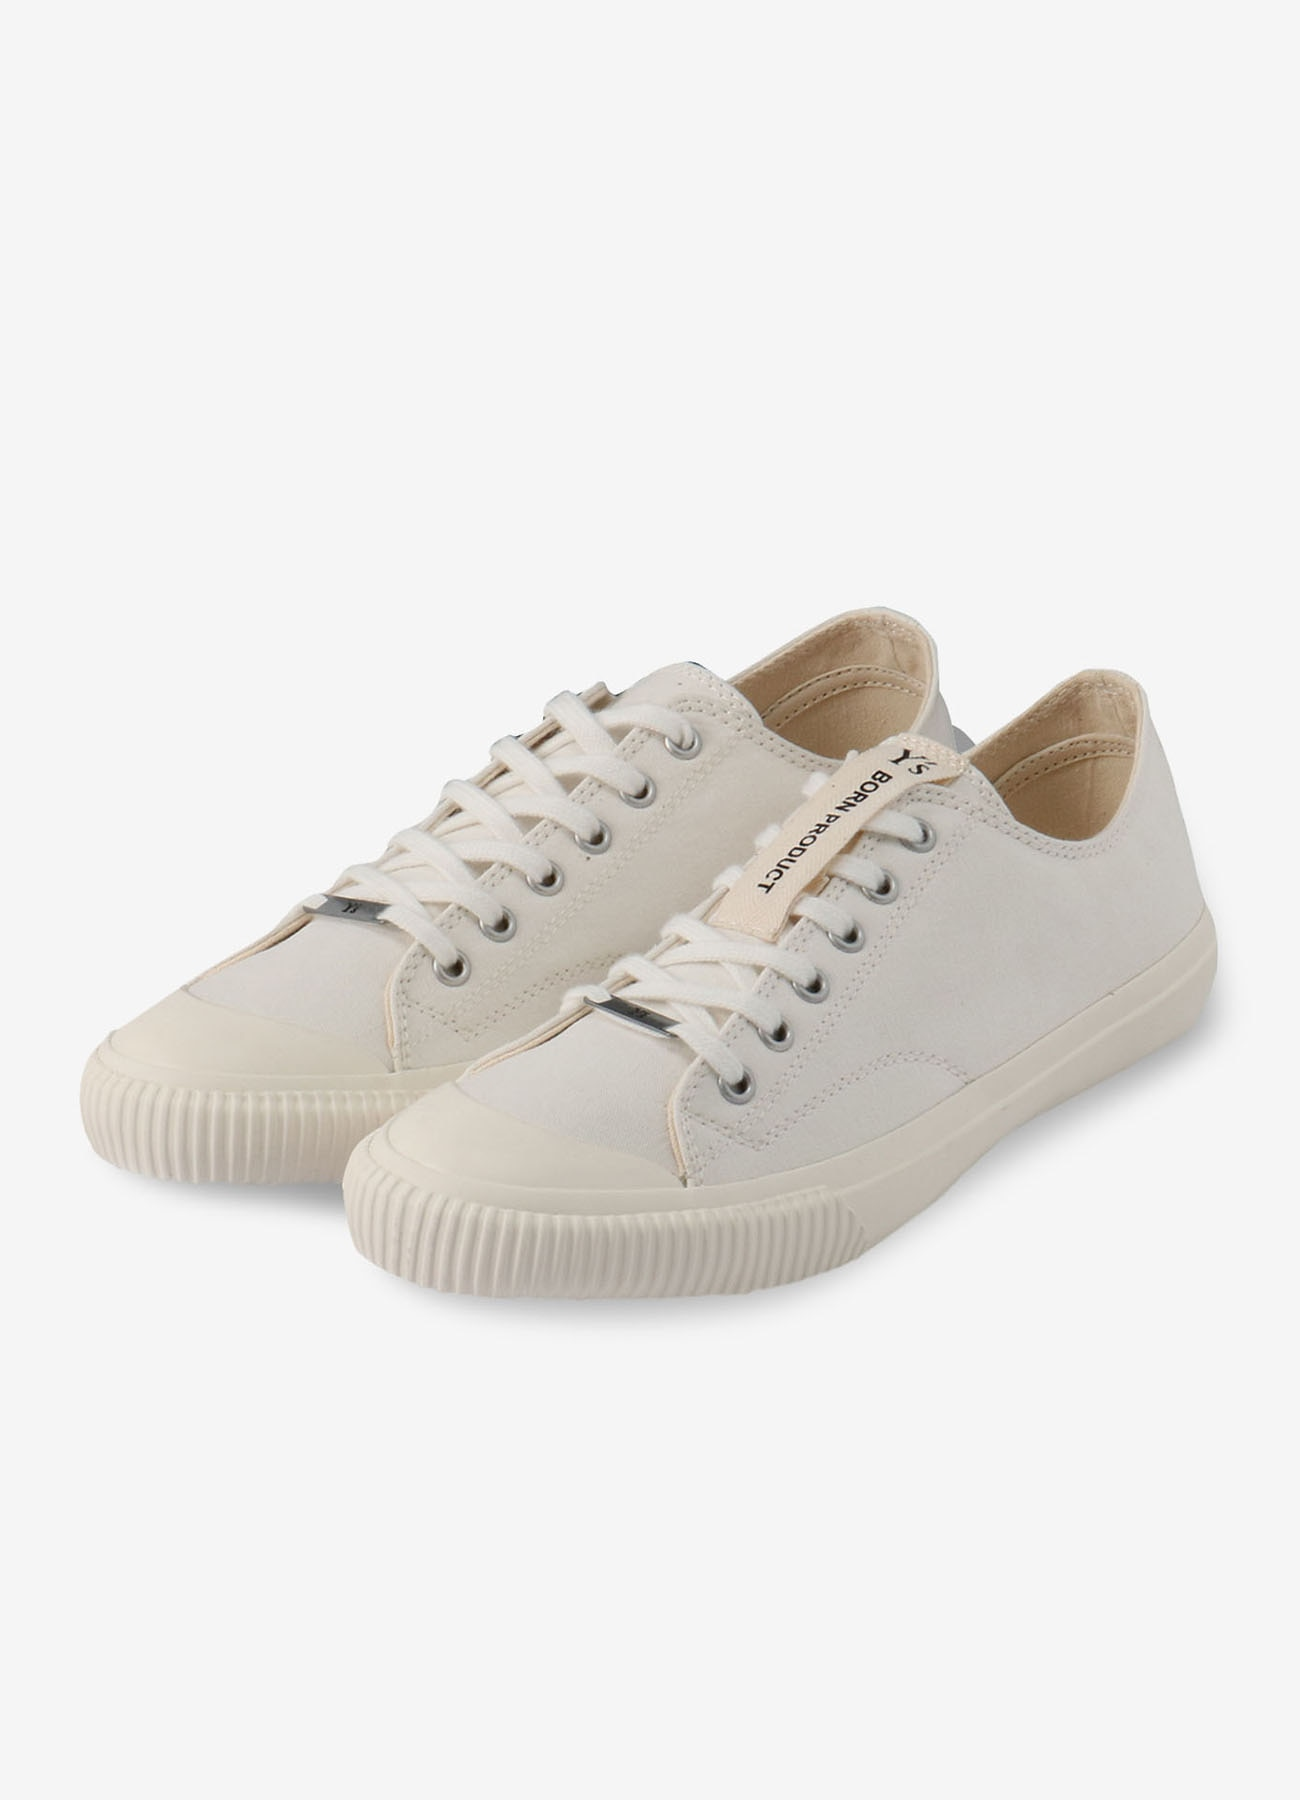 Campus Sneakers for Men